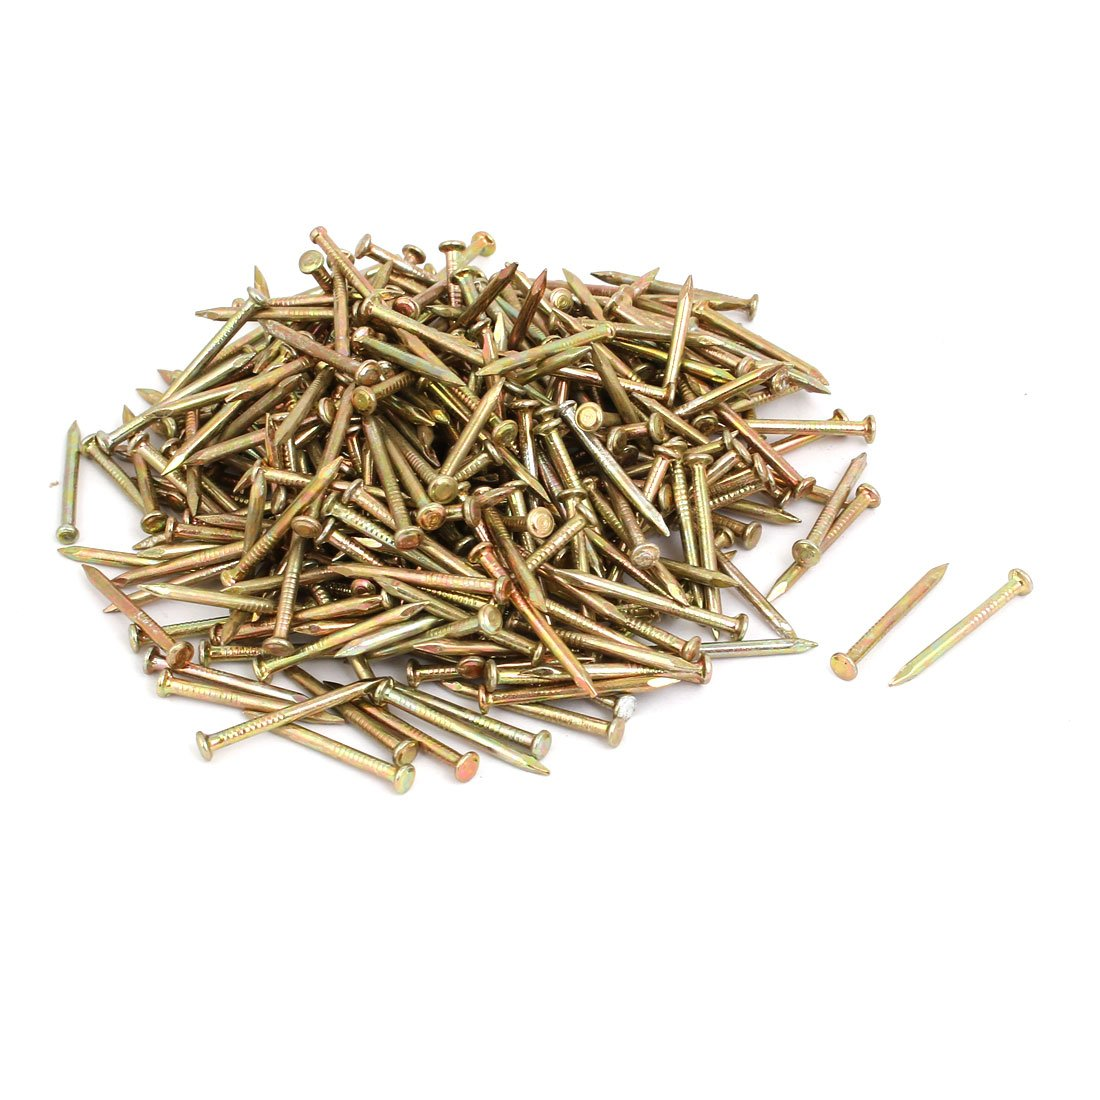 uxcell 500pcs 25mm Length Steel Point Tip Cement Nail Bronze Tone